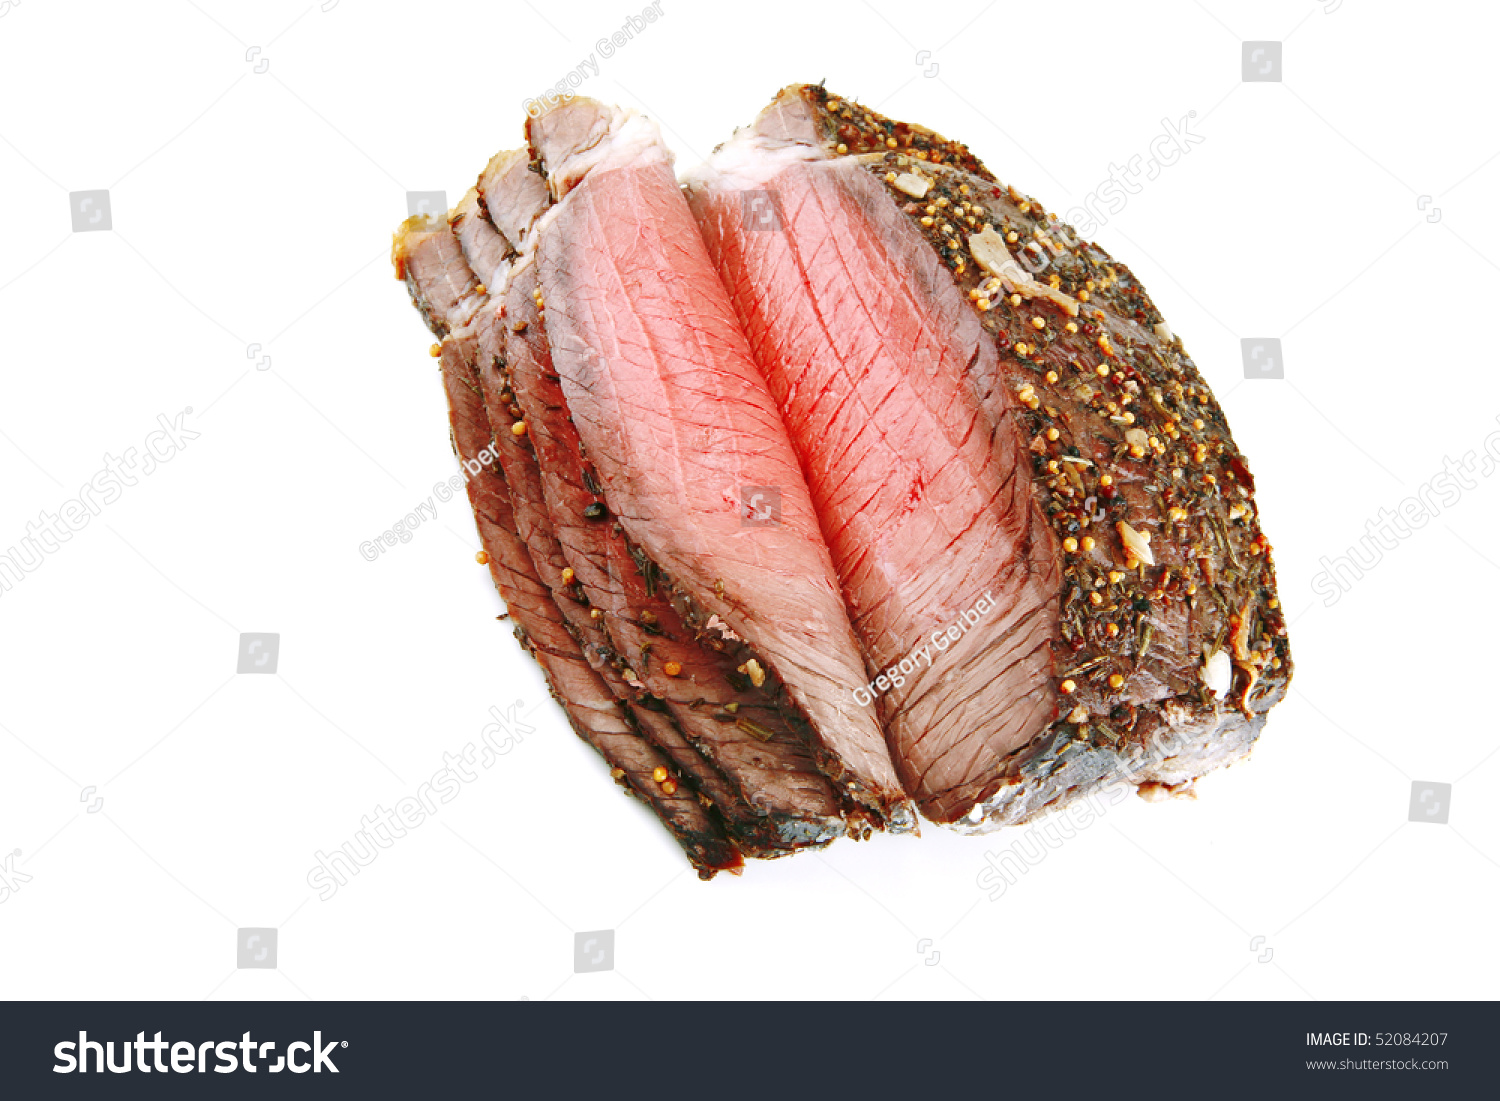 Sliced roast beef package - Whole Roast Beef Slice Isolated Over White